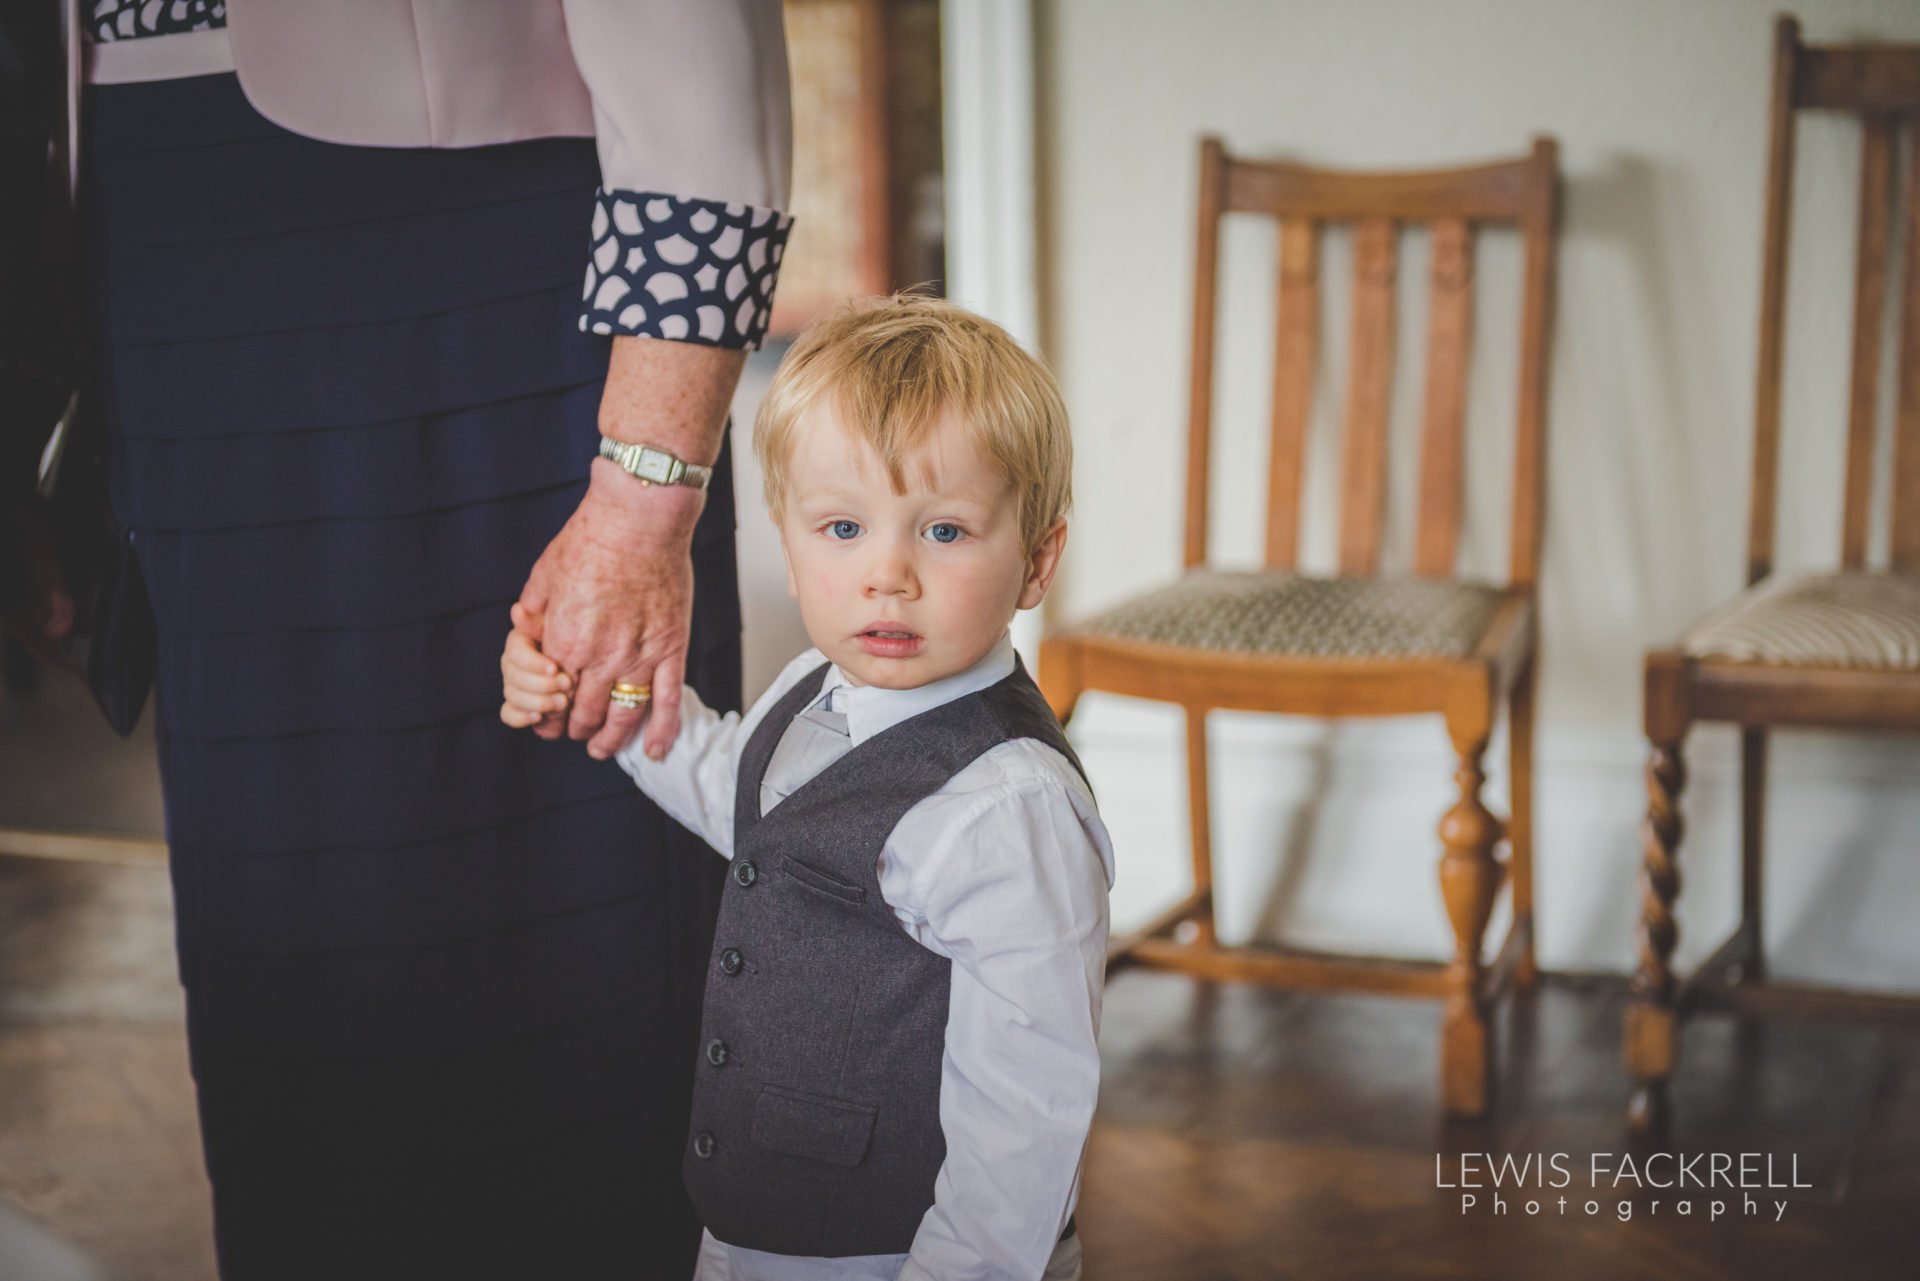 Lewis-Fackrell-Photography-Wedding-Photographer-Cardiff-Swansea-Bristol-Newport-Pre-wedding-photoshoot-Rhian-Mark-Mansion-House-Llansteffan-Carmarthenshire--34